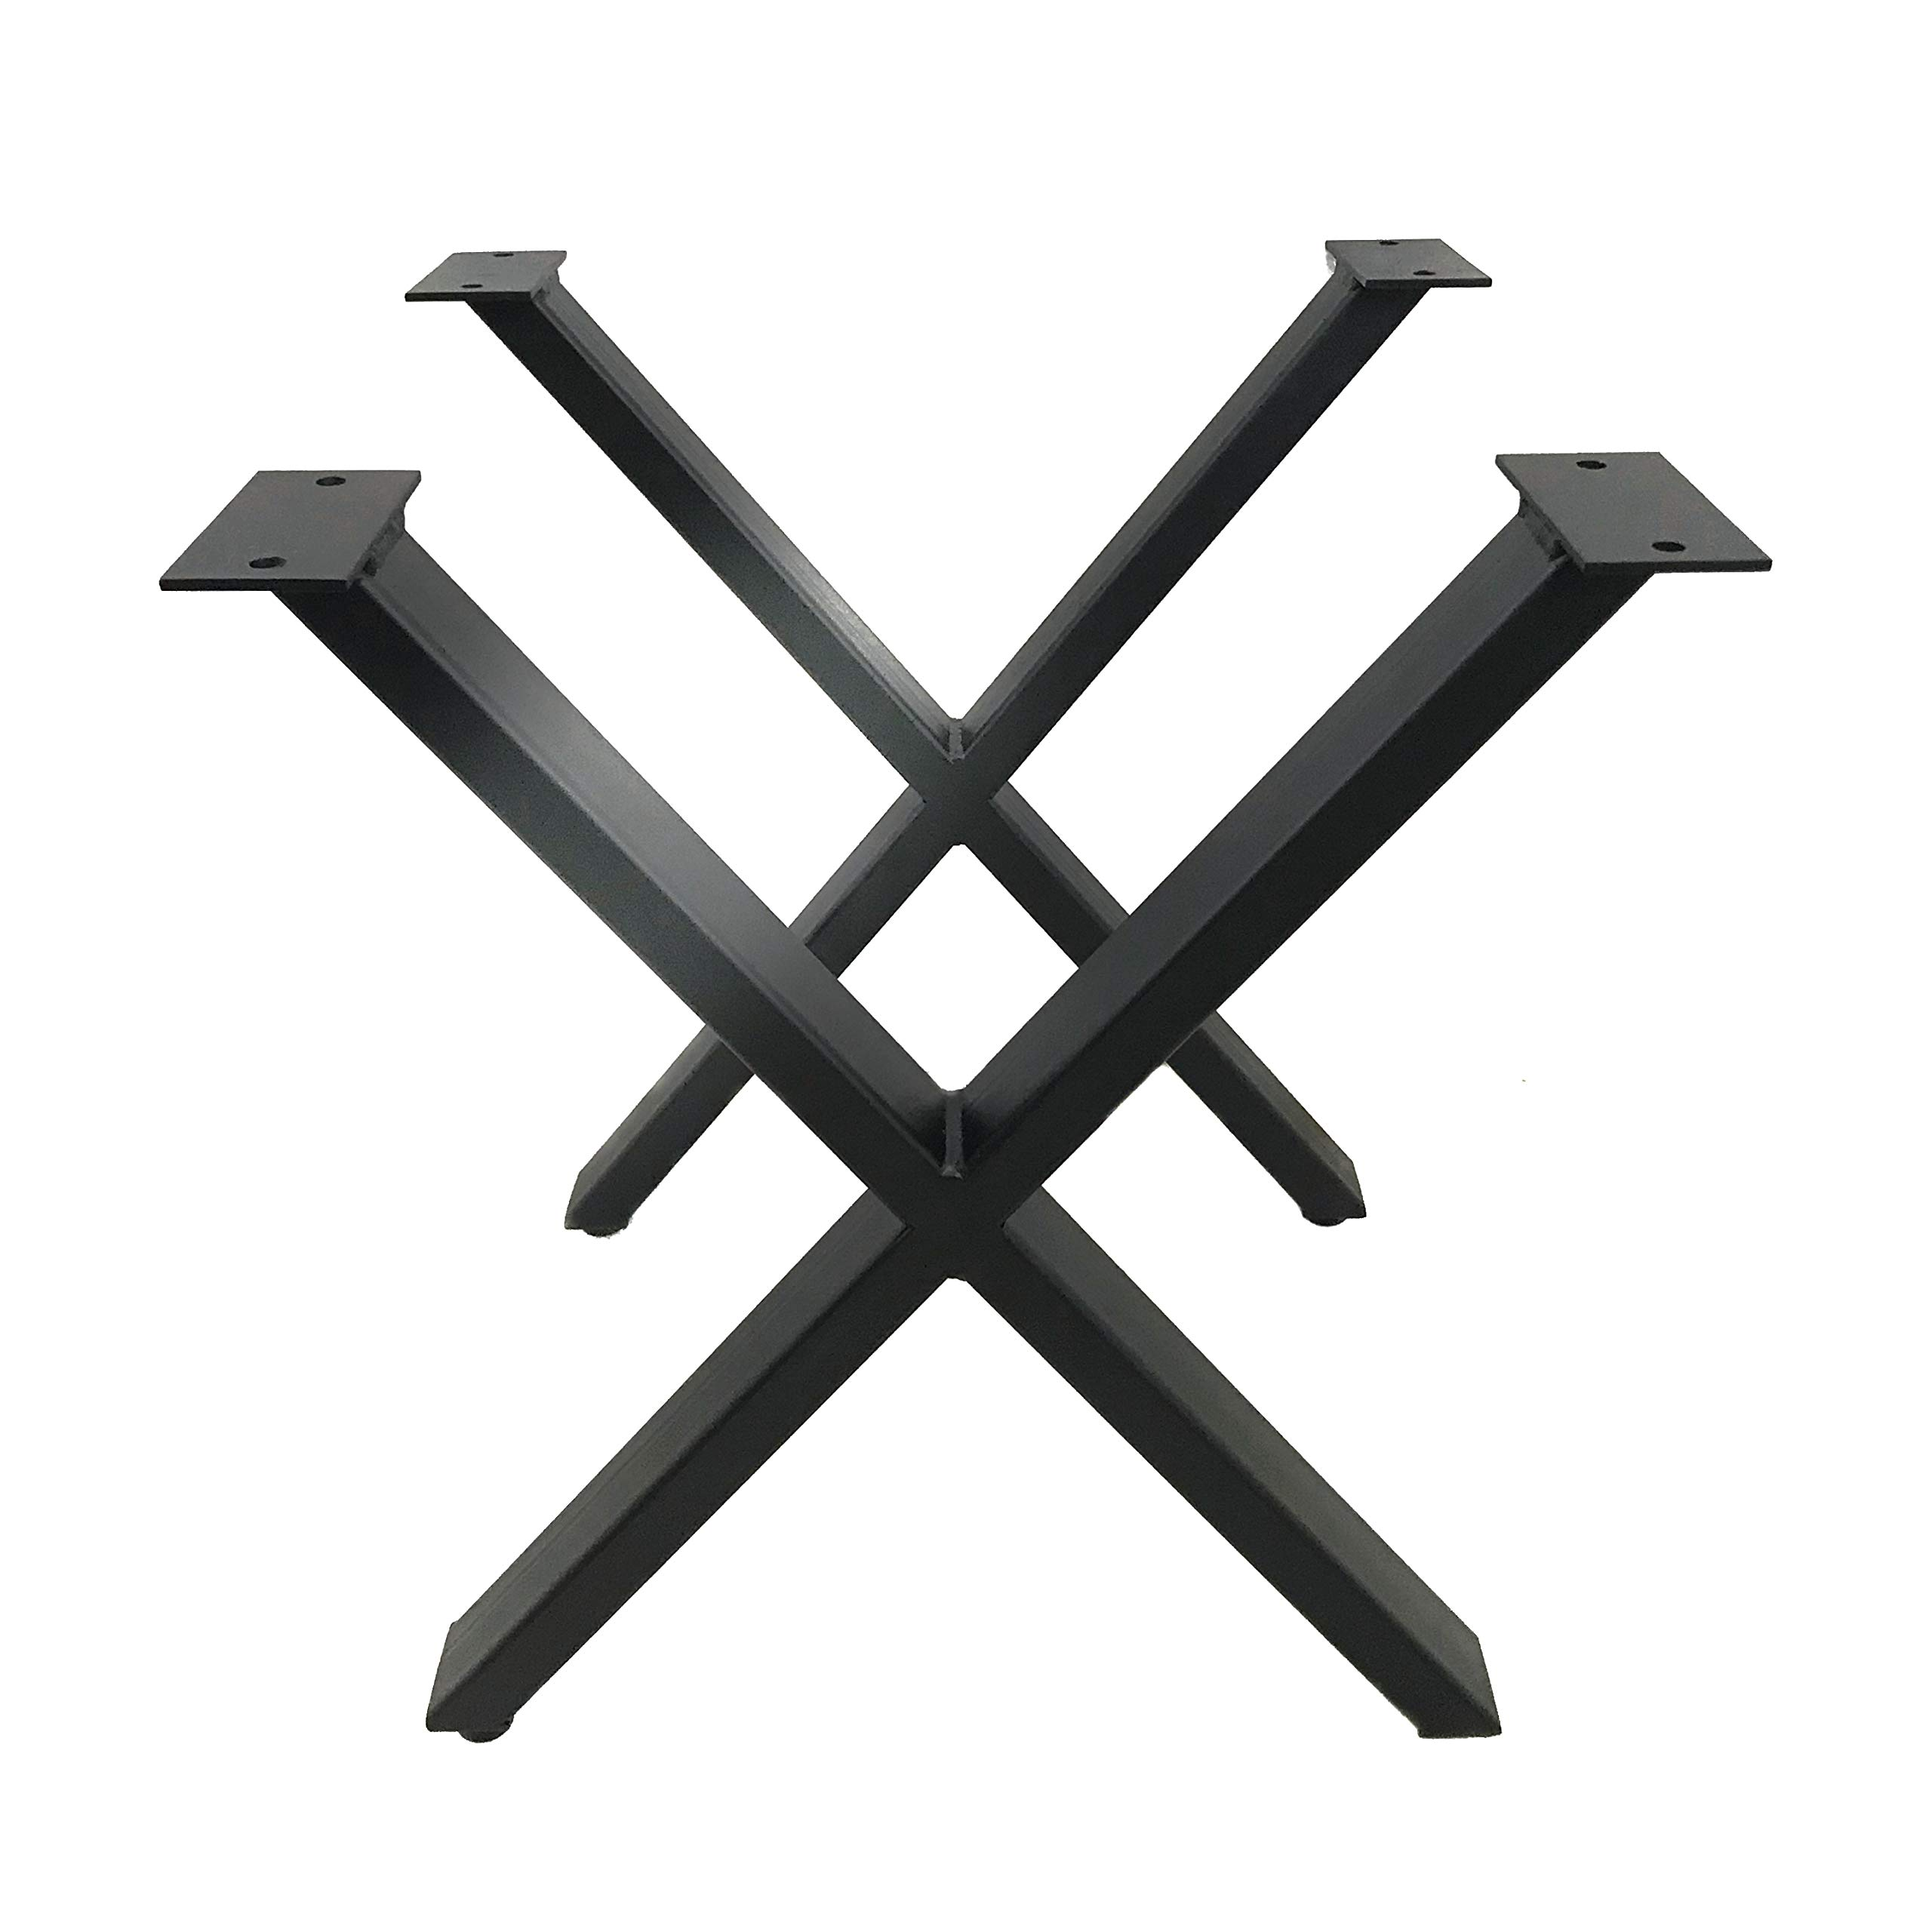 Set of 2 Modern Industrial X Table Legs, Self Leveling, Heavy Duty Kitchen, Dining and Bench Legs, Powder Coated Flat Black (28Hx24W Table Leg Set)